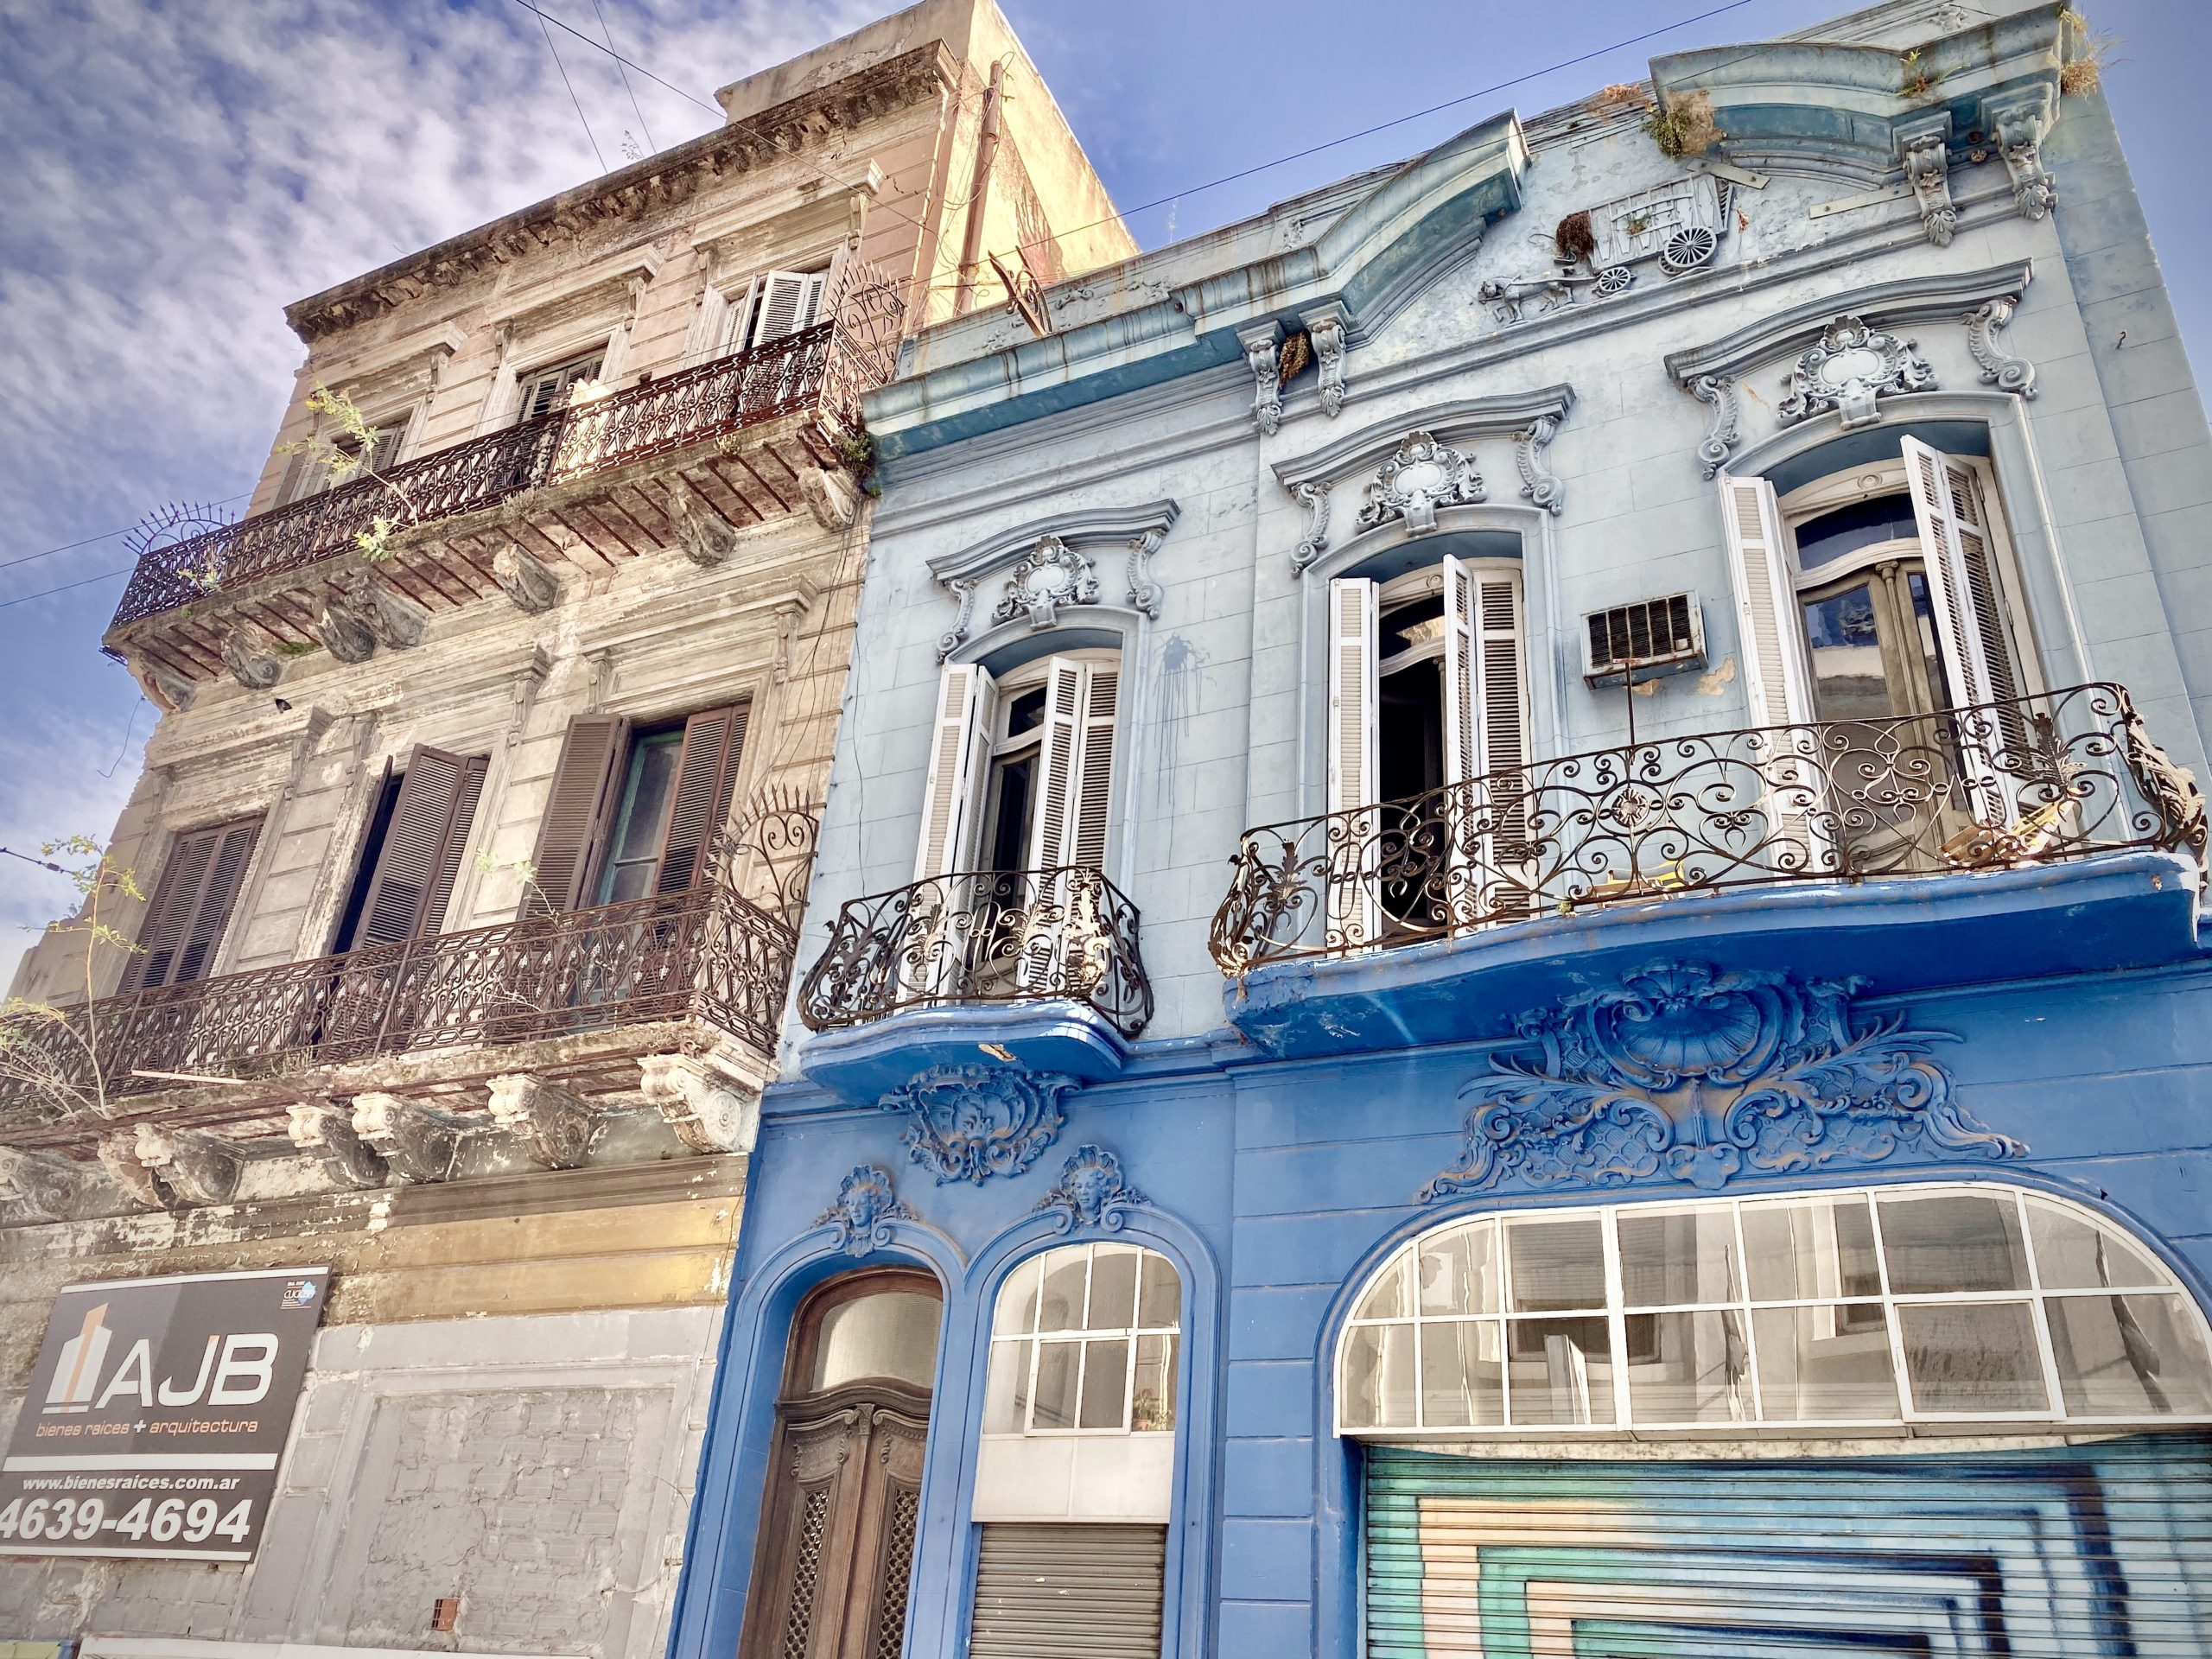 Buenos Aires – Just photos